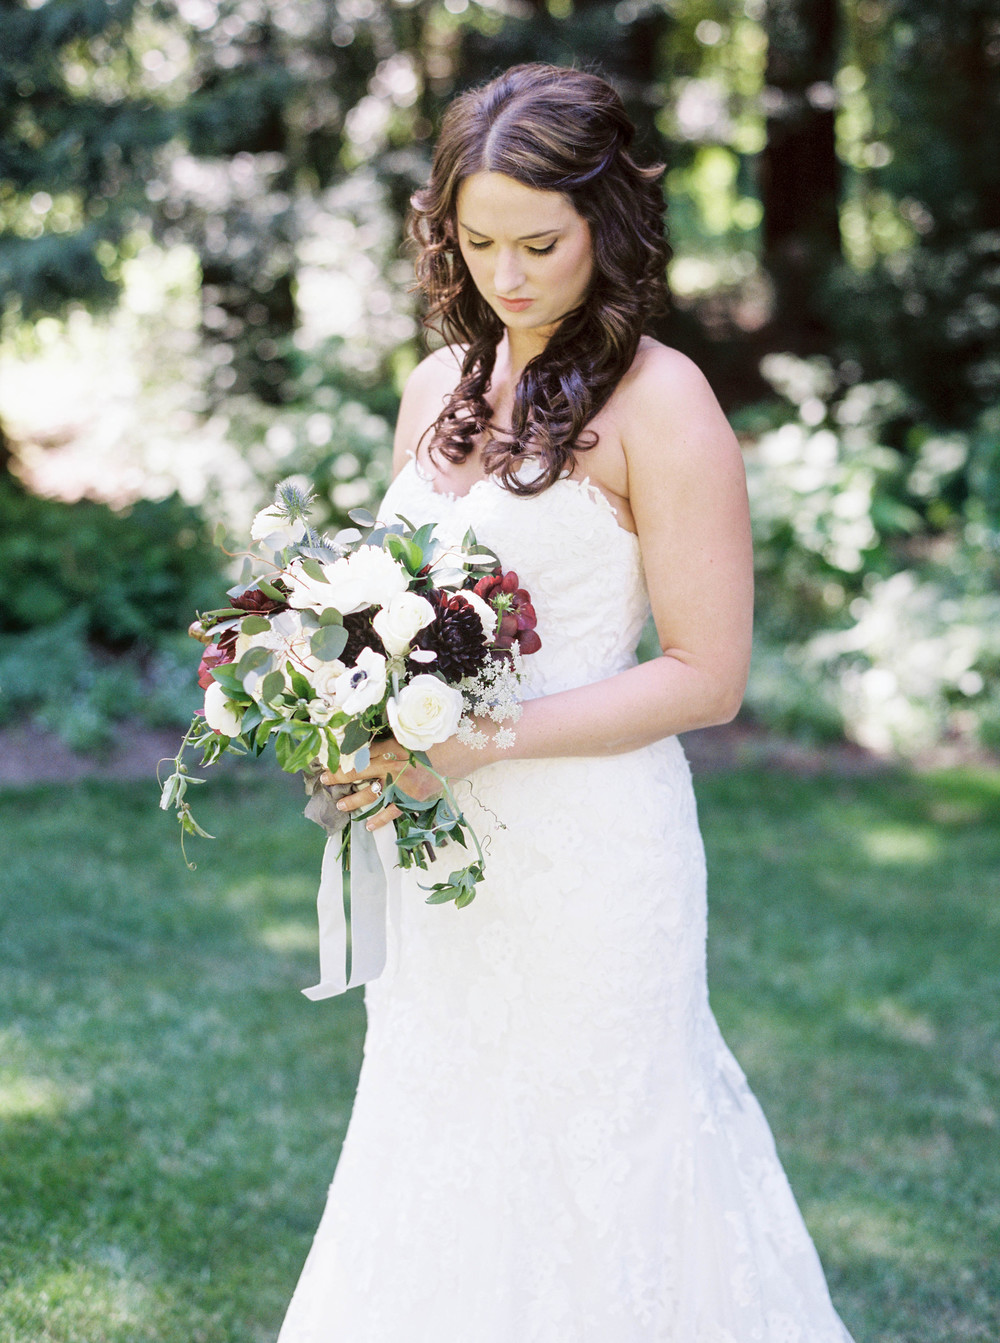 Meghan Mehan Photography - Alisa & Aaron_Nestldown Wedding - 140.jpg